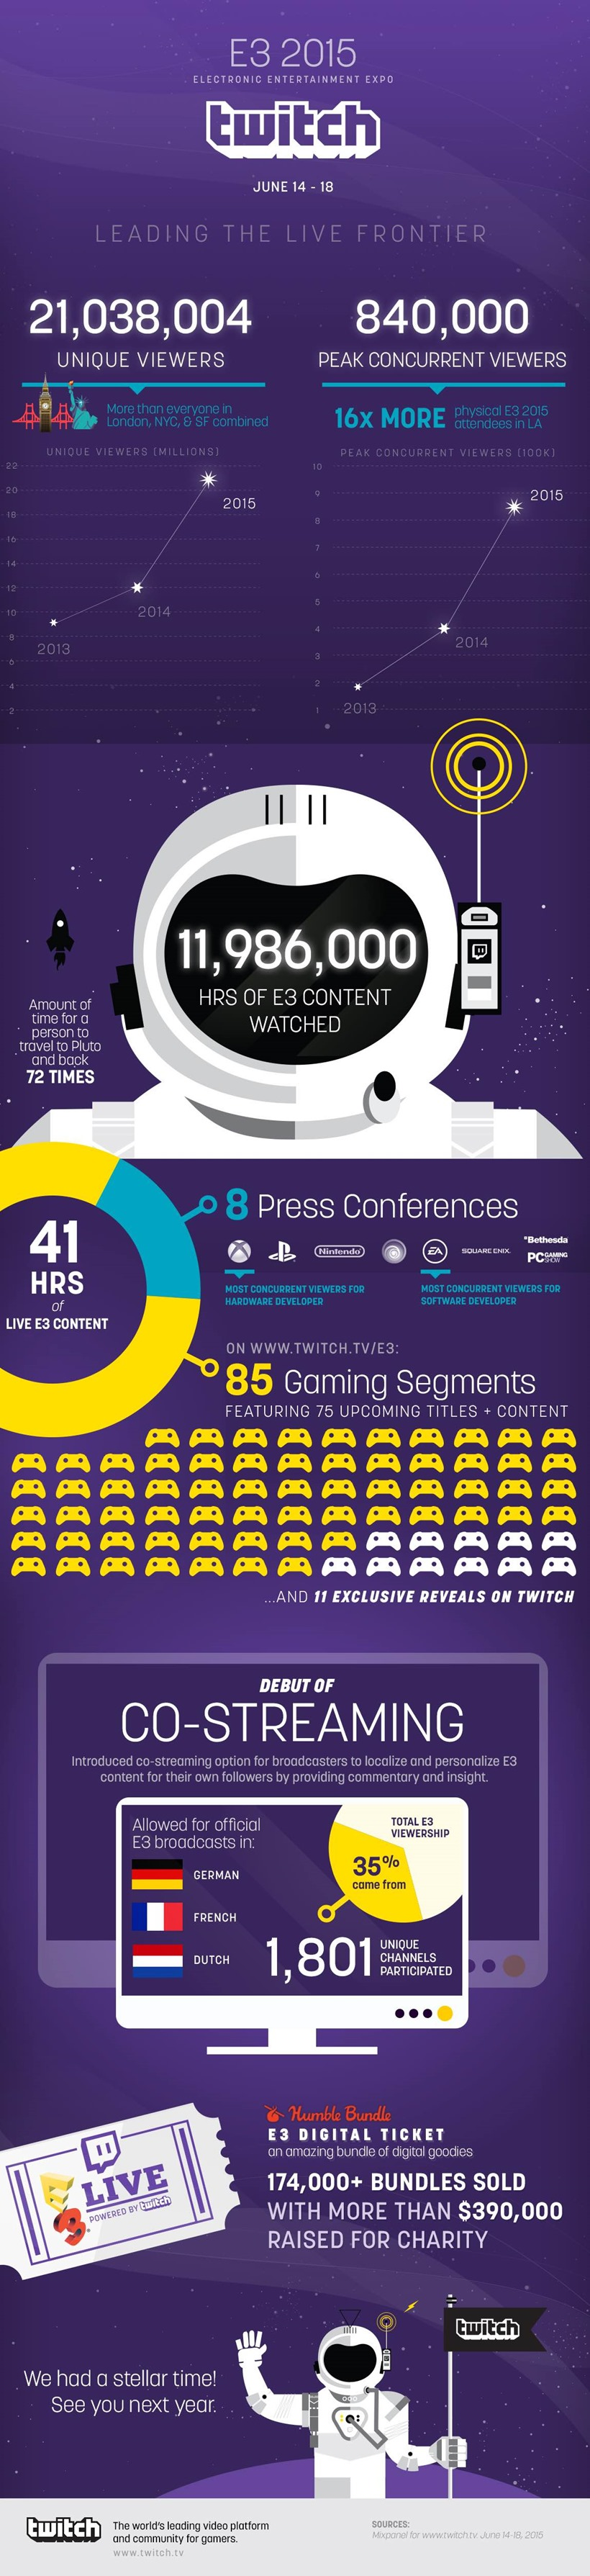 THE TWITCH E3 NUMBERS MASON